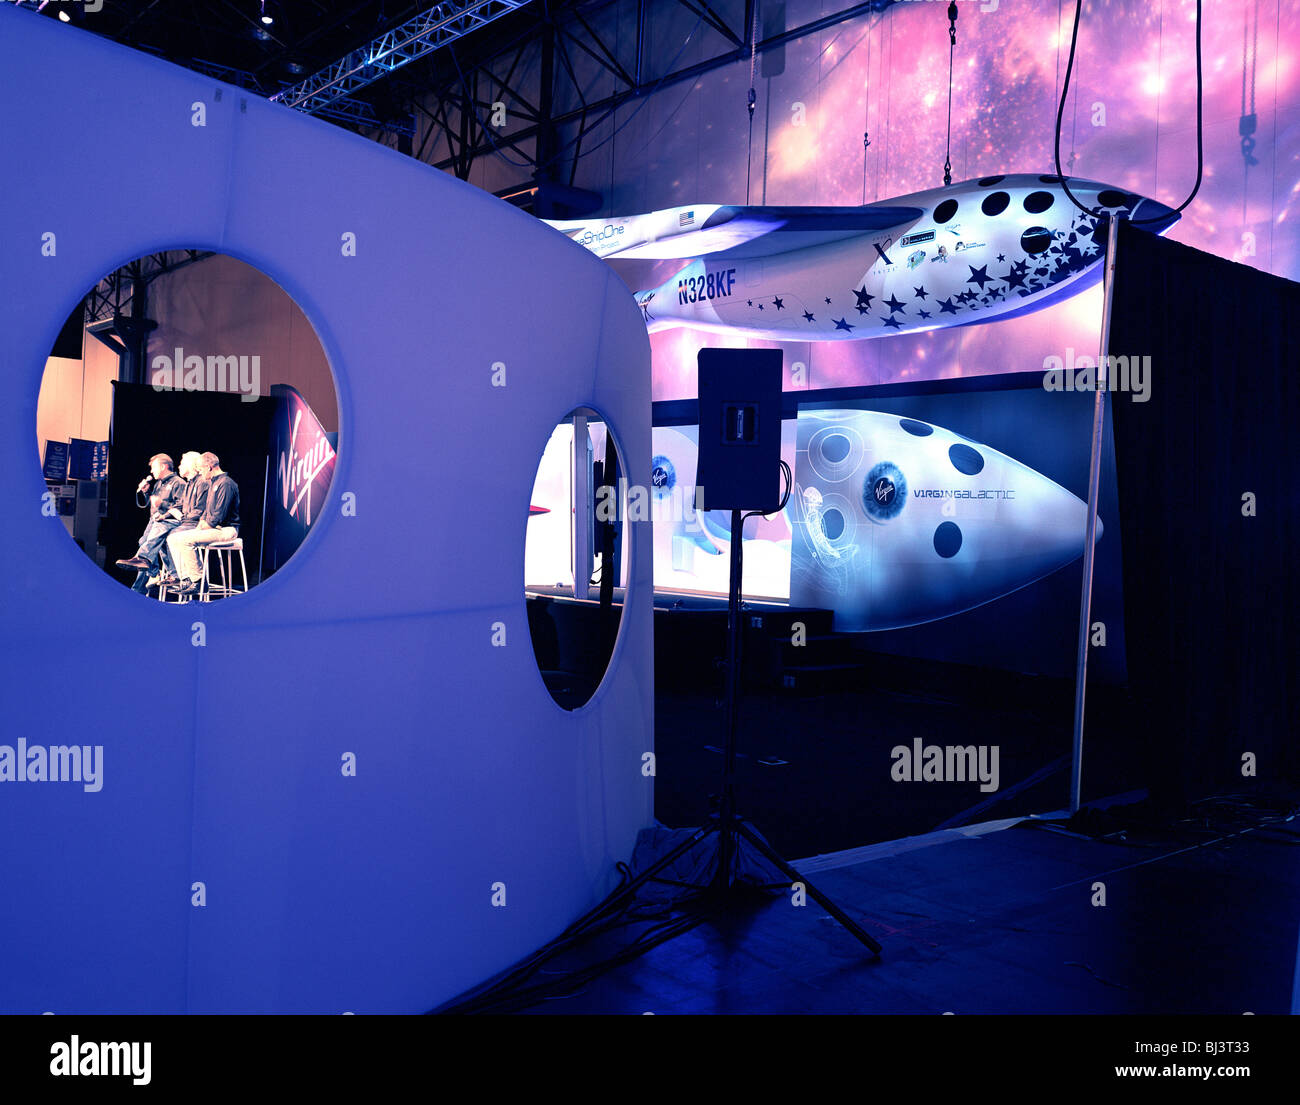 Virgin boss, Sir Richard Branson and Virgin Galactic directors Will Whitehorn and Stephen Attenborough, talk to - Stock Image